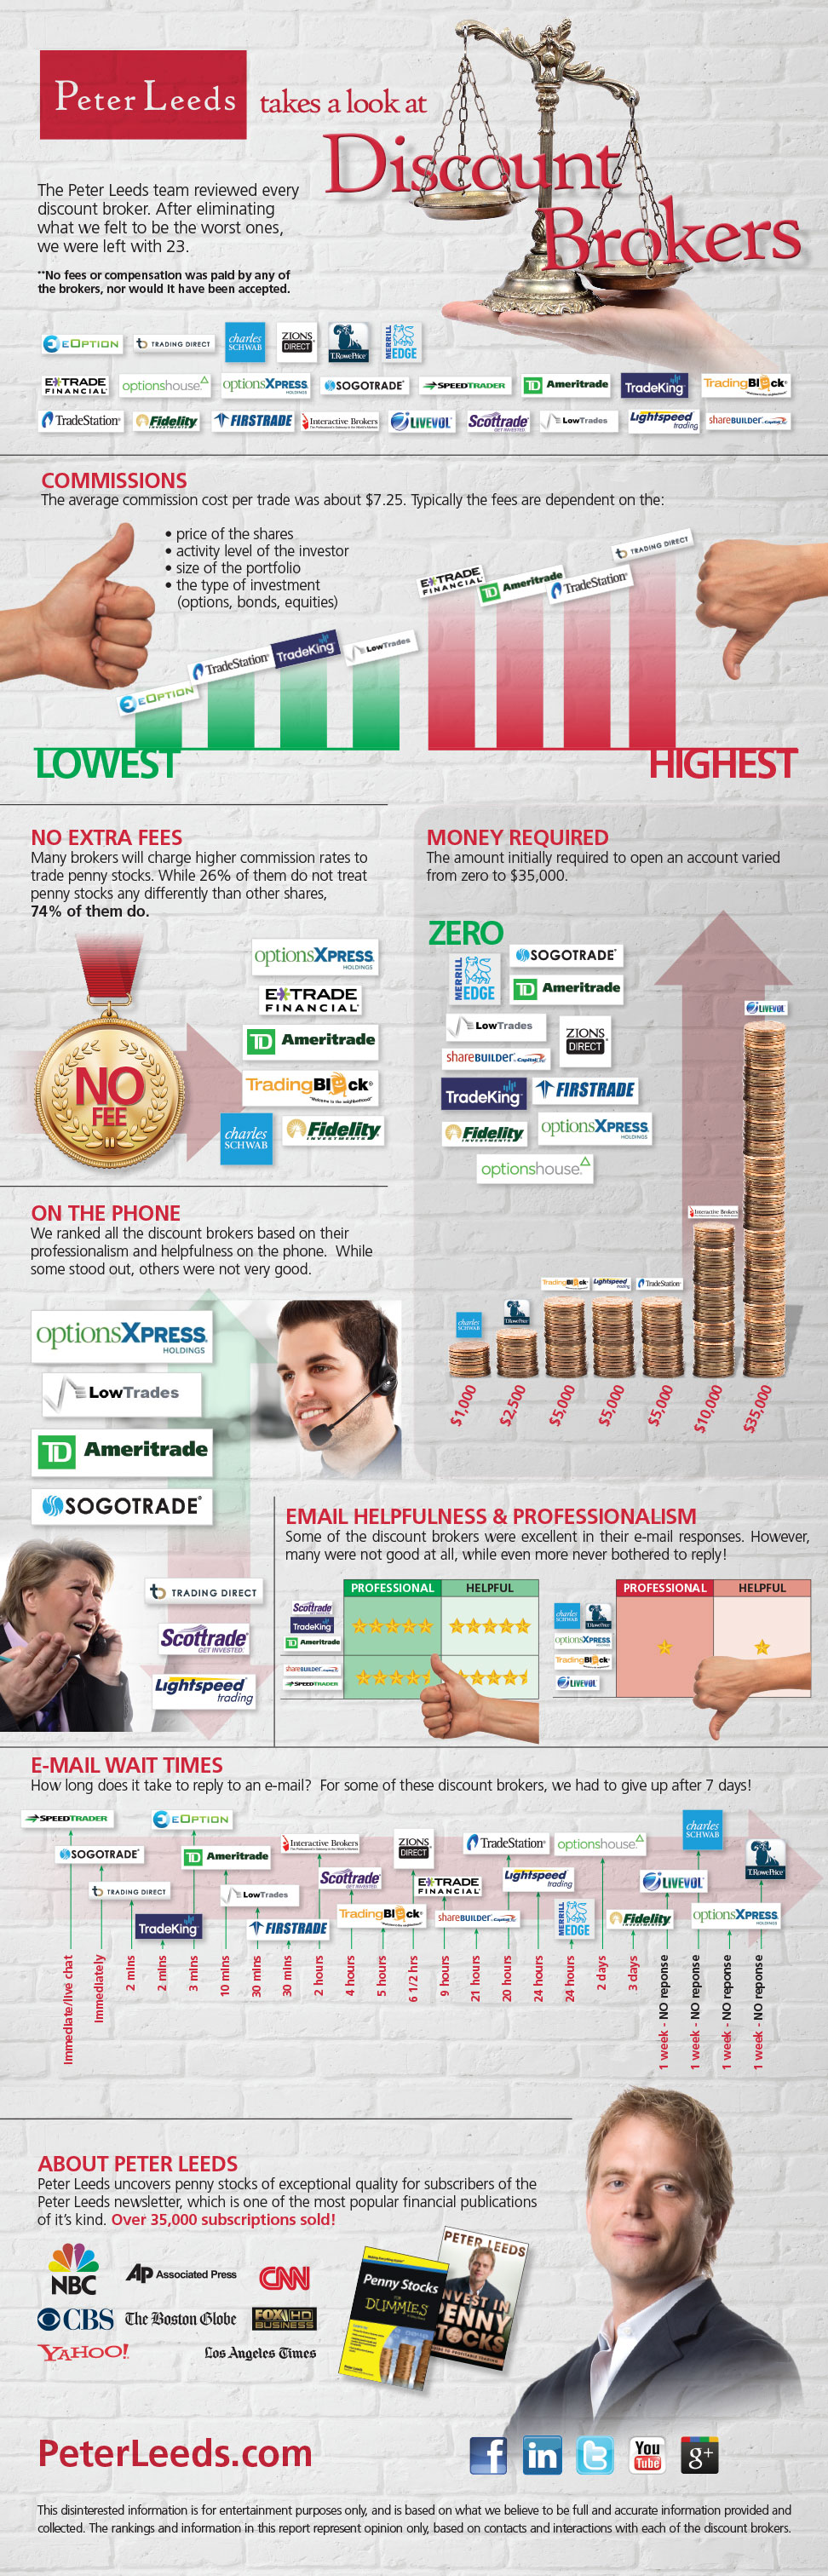 Infographic by Peter Leeds reviewing all the discount brokers